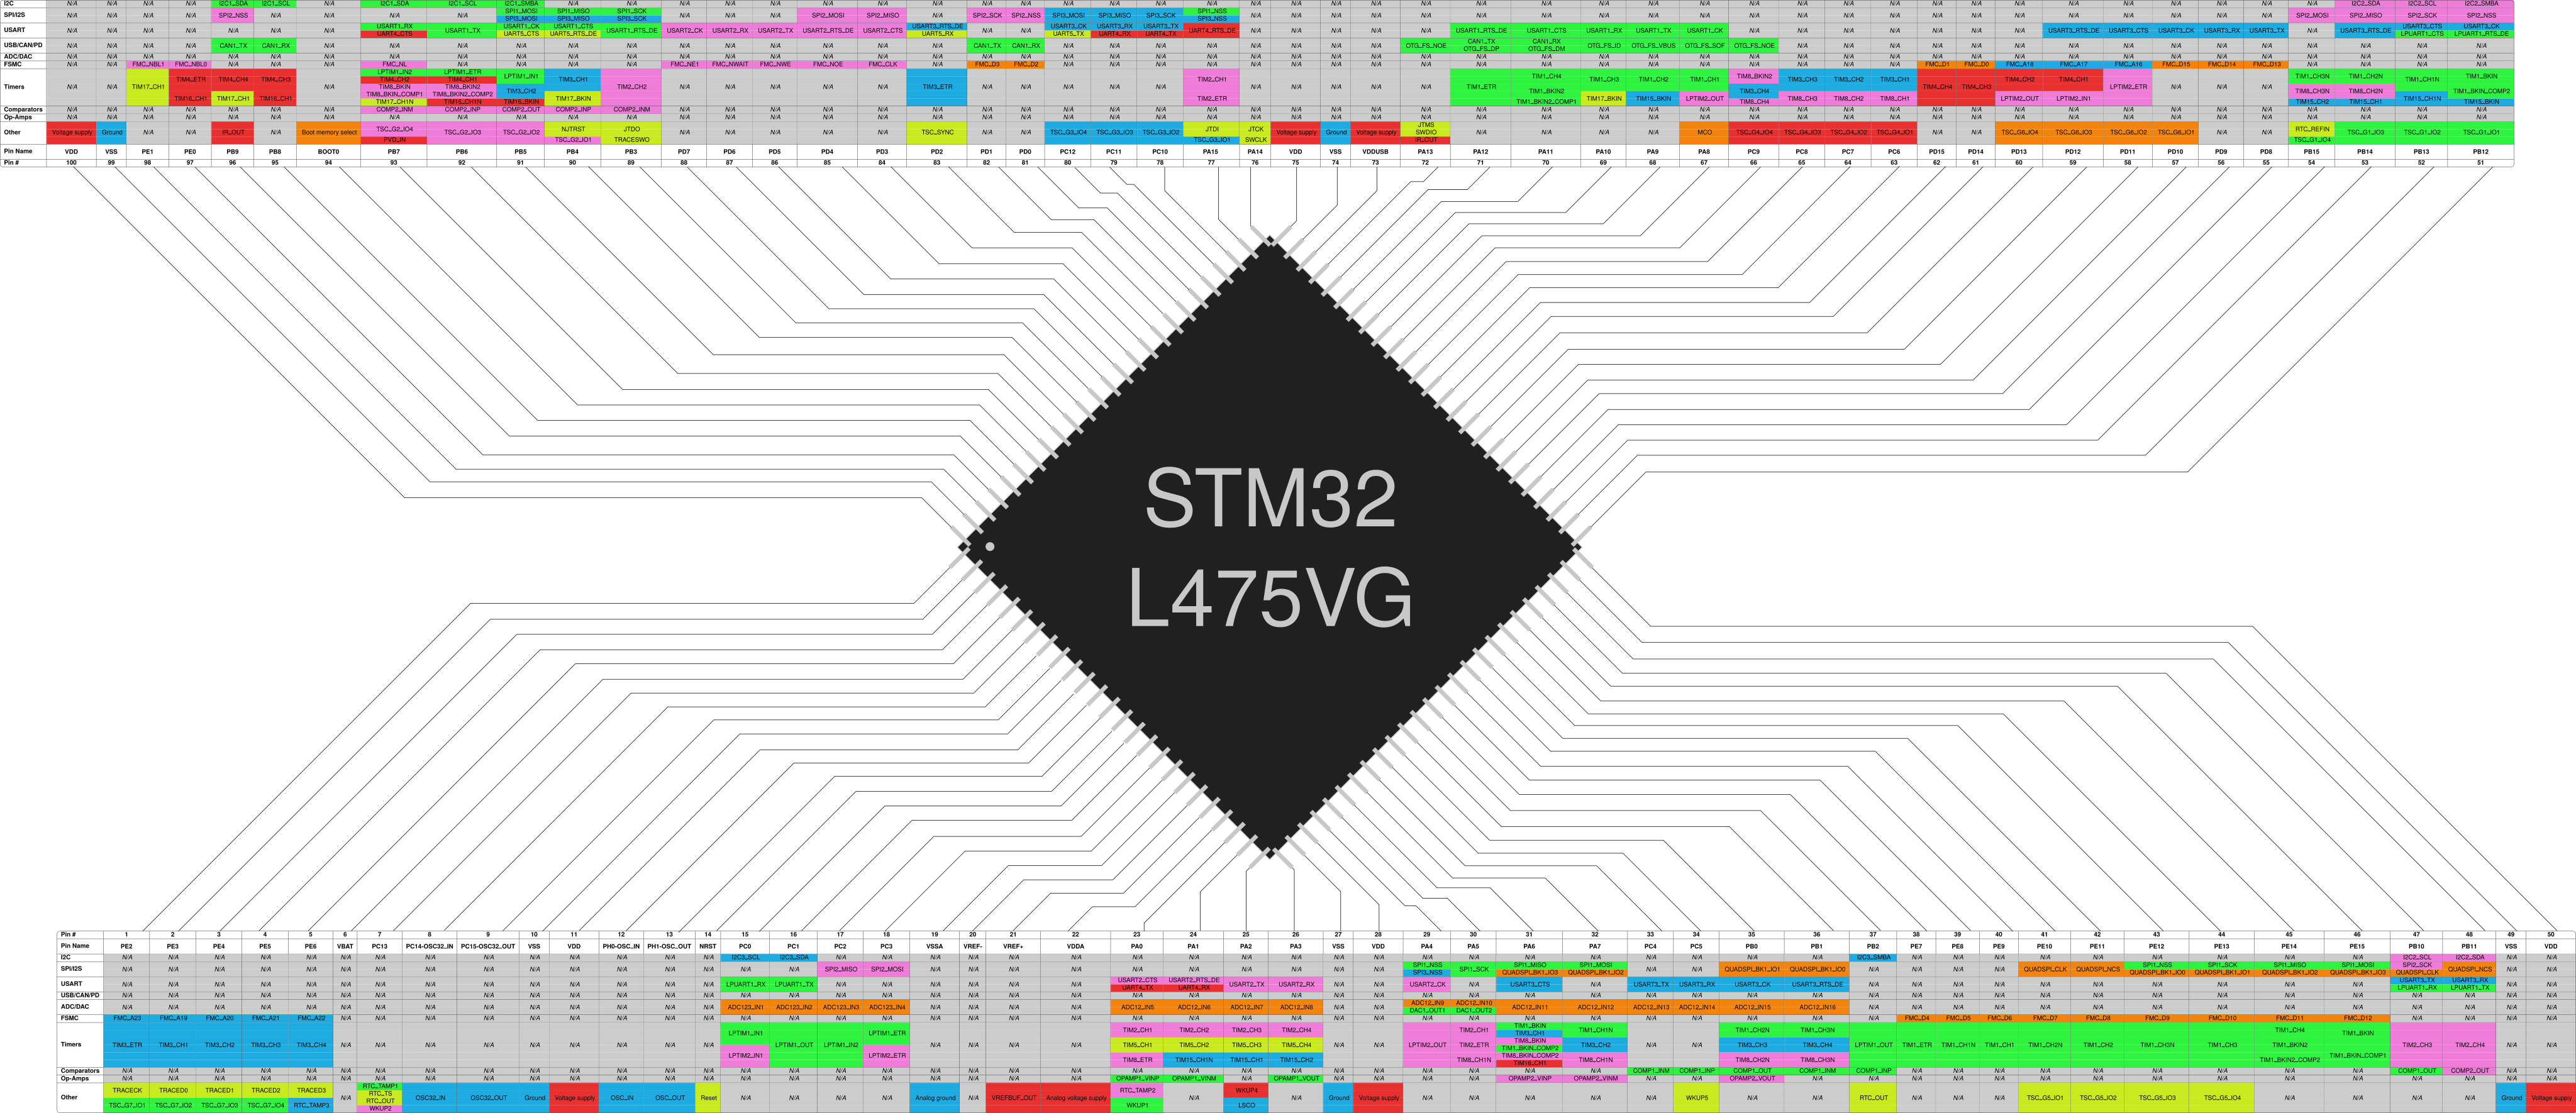 STM32L475VG peripheral map